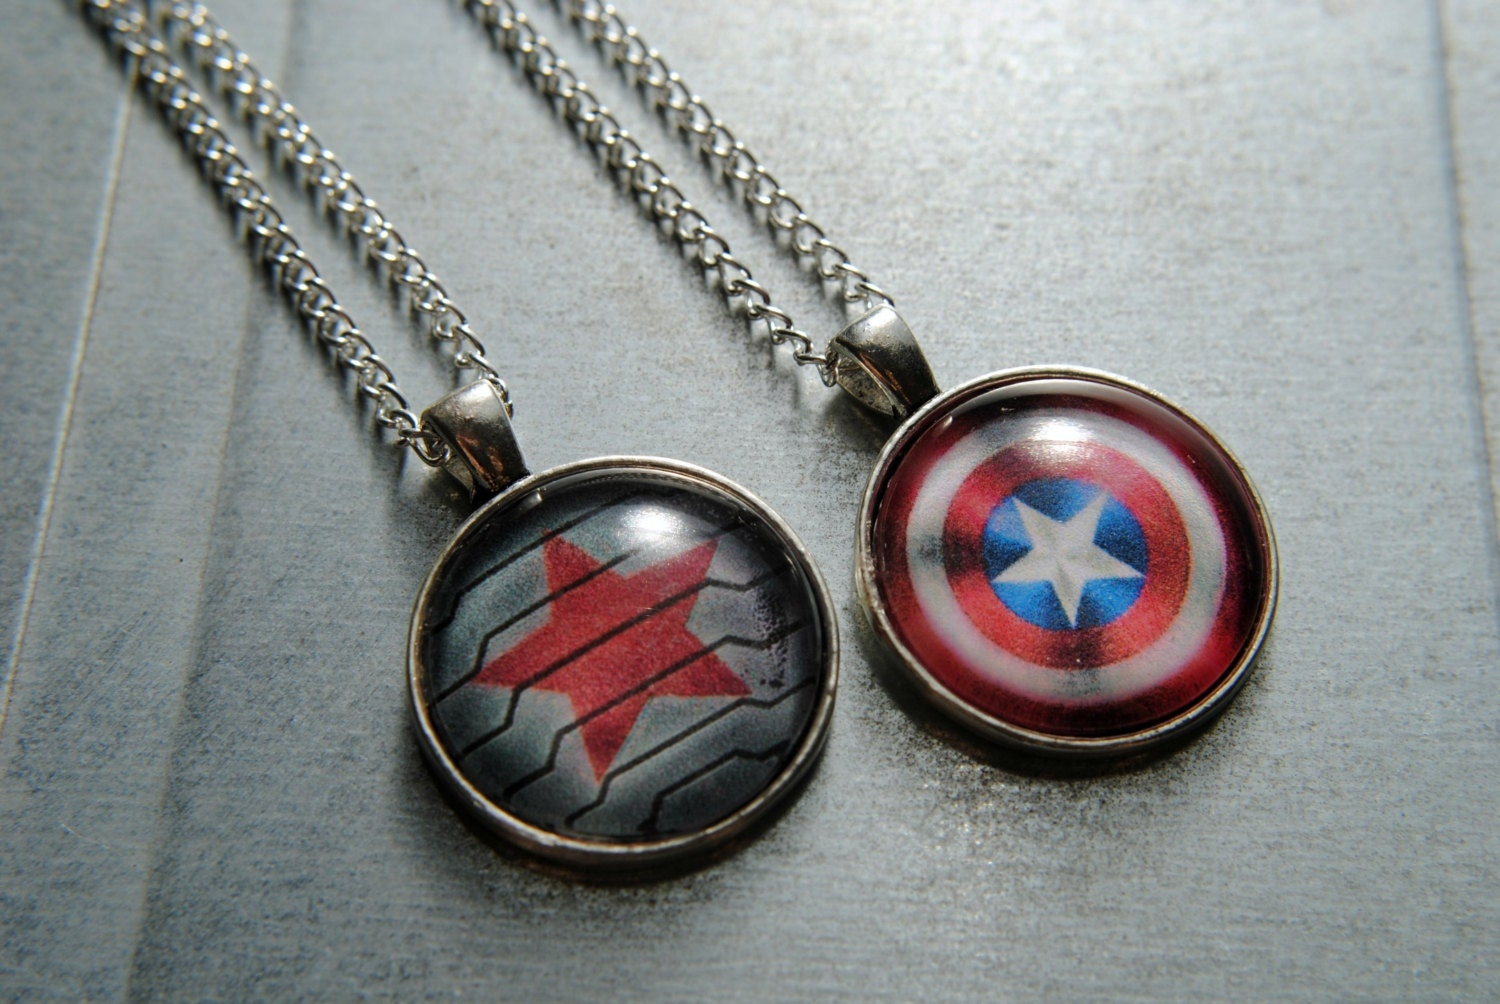 bucky barnes captain america wedding band Captain America or Winter Soldier Necklace Steve Rogers Bucky Barnes Fandom Fashion Handmade Jewelry The Avengers Civil War